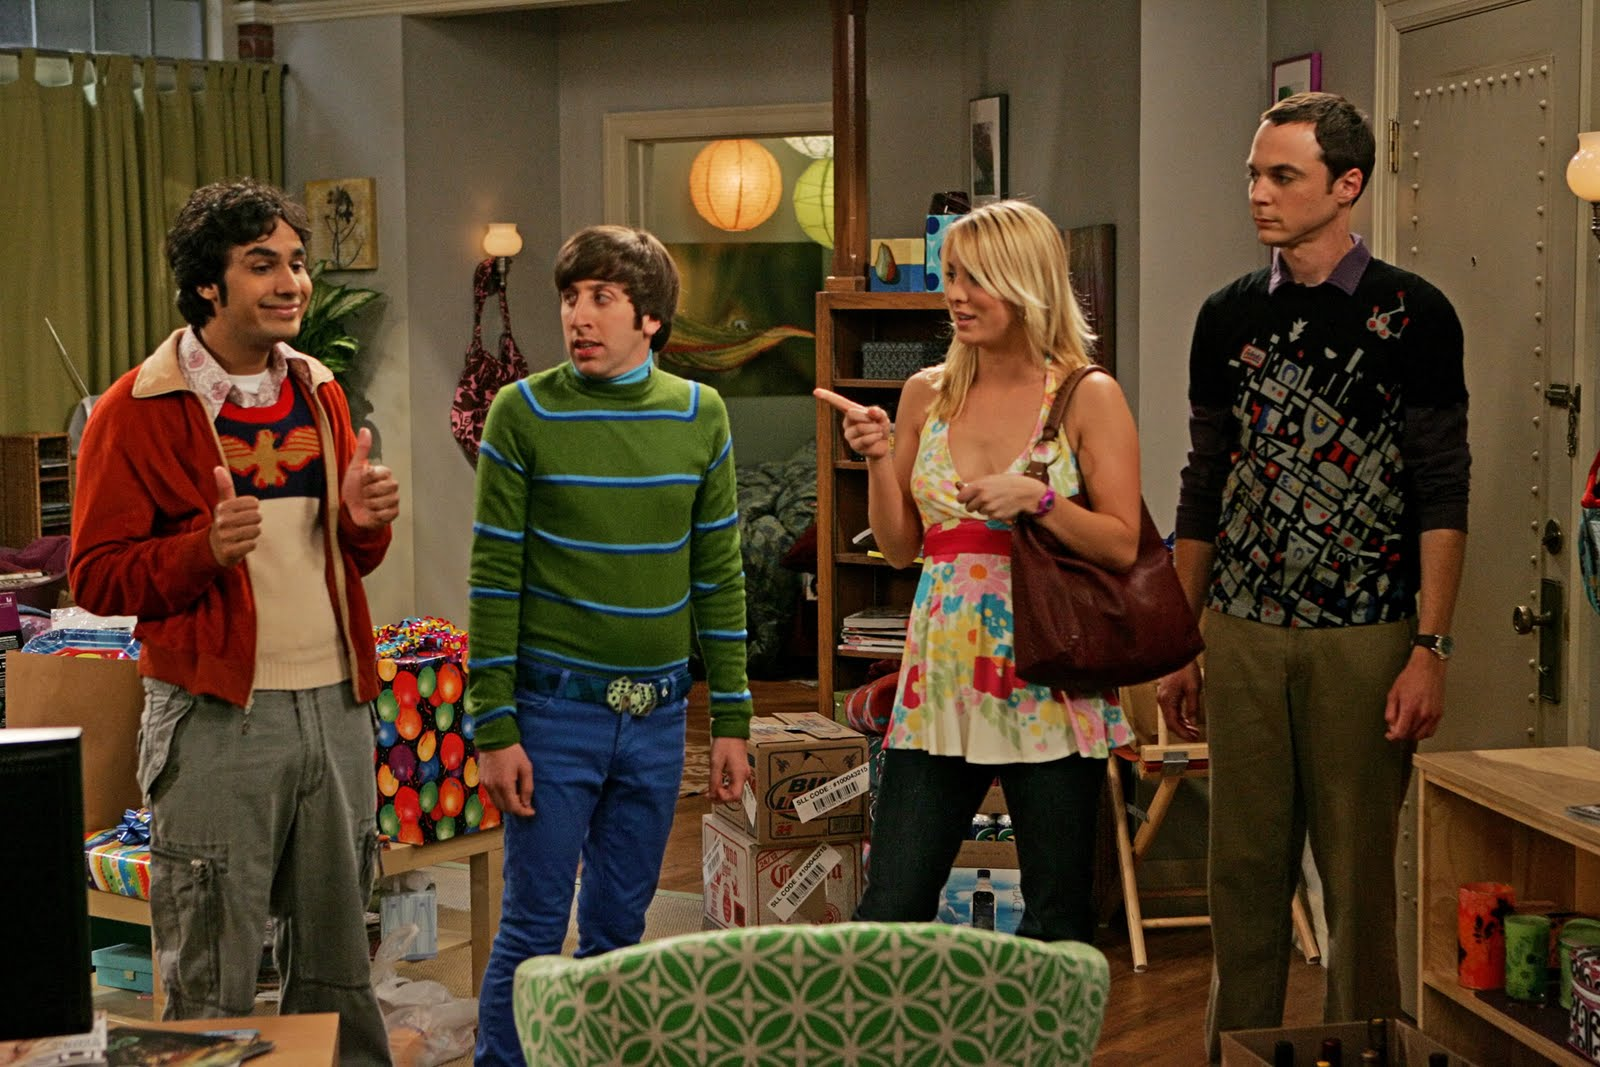 Big Bang Theory Emmy Awards Nominee HD Wallpapers  Desktop Wallpapers